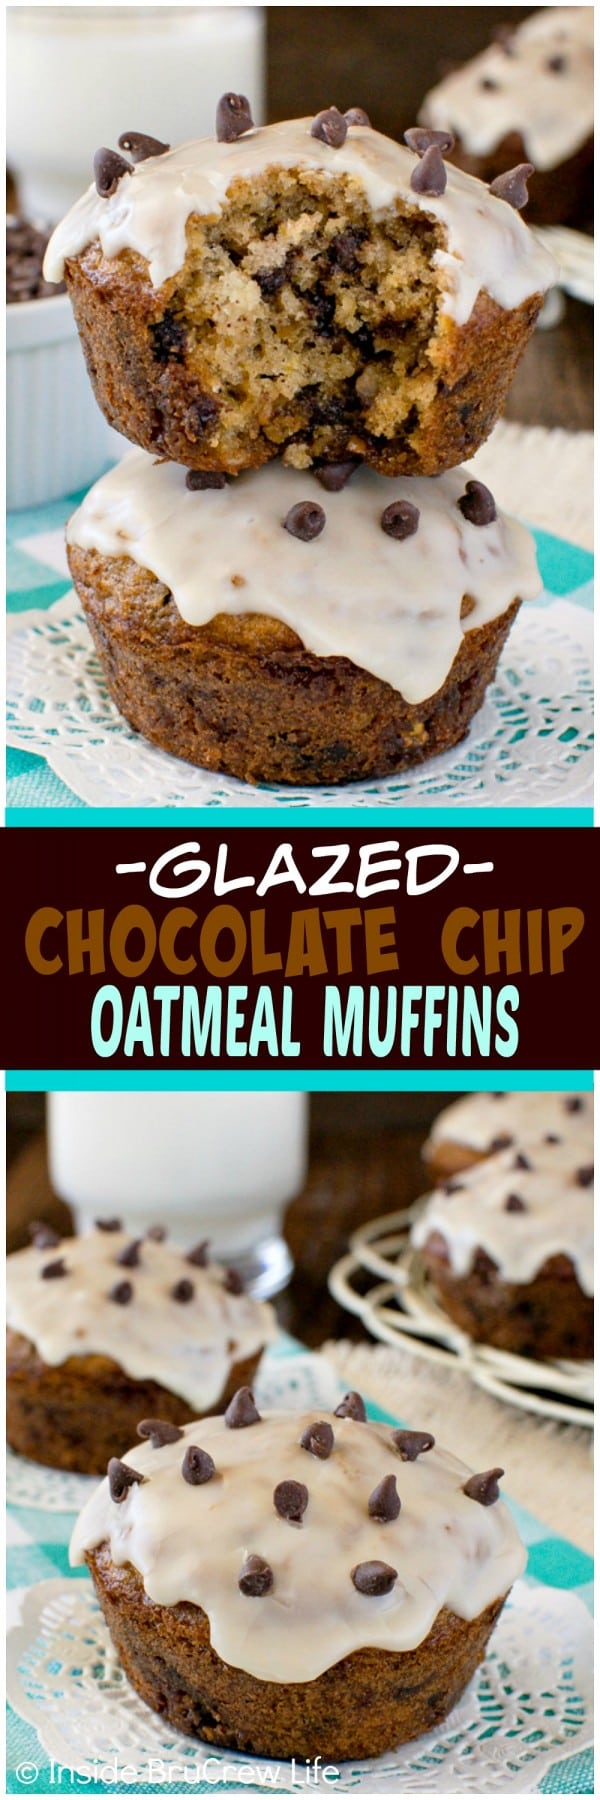 Chocolate Chip Oatmeal Muffins - soft fluffy muffins with a coffee glaze. This awesome breakfast recipe will have you thinking you are eating cookies for breakfast!